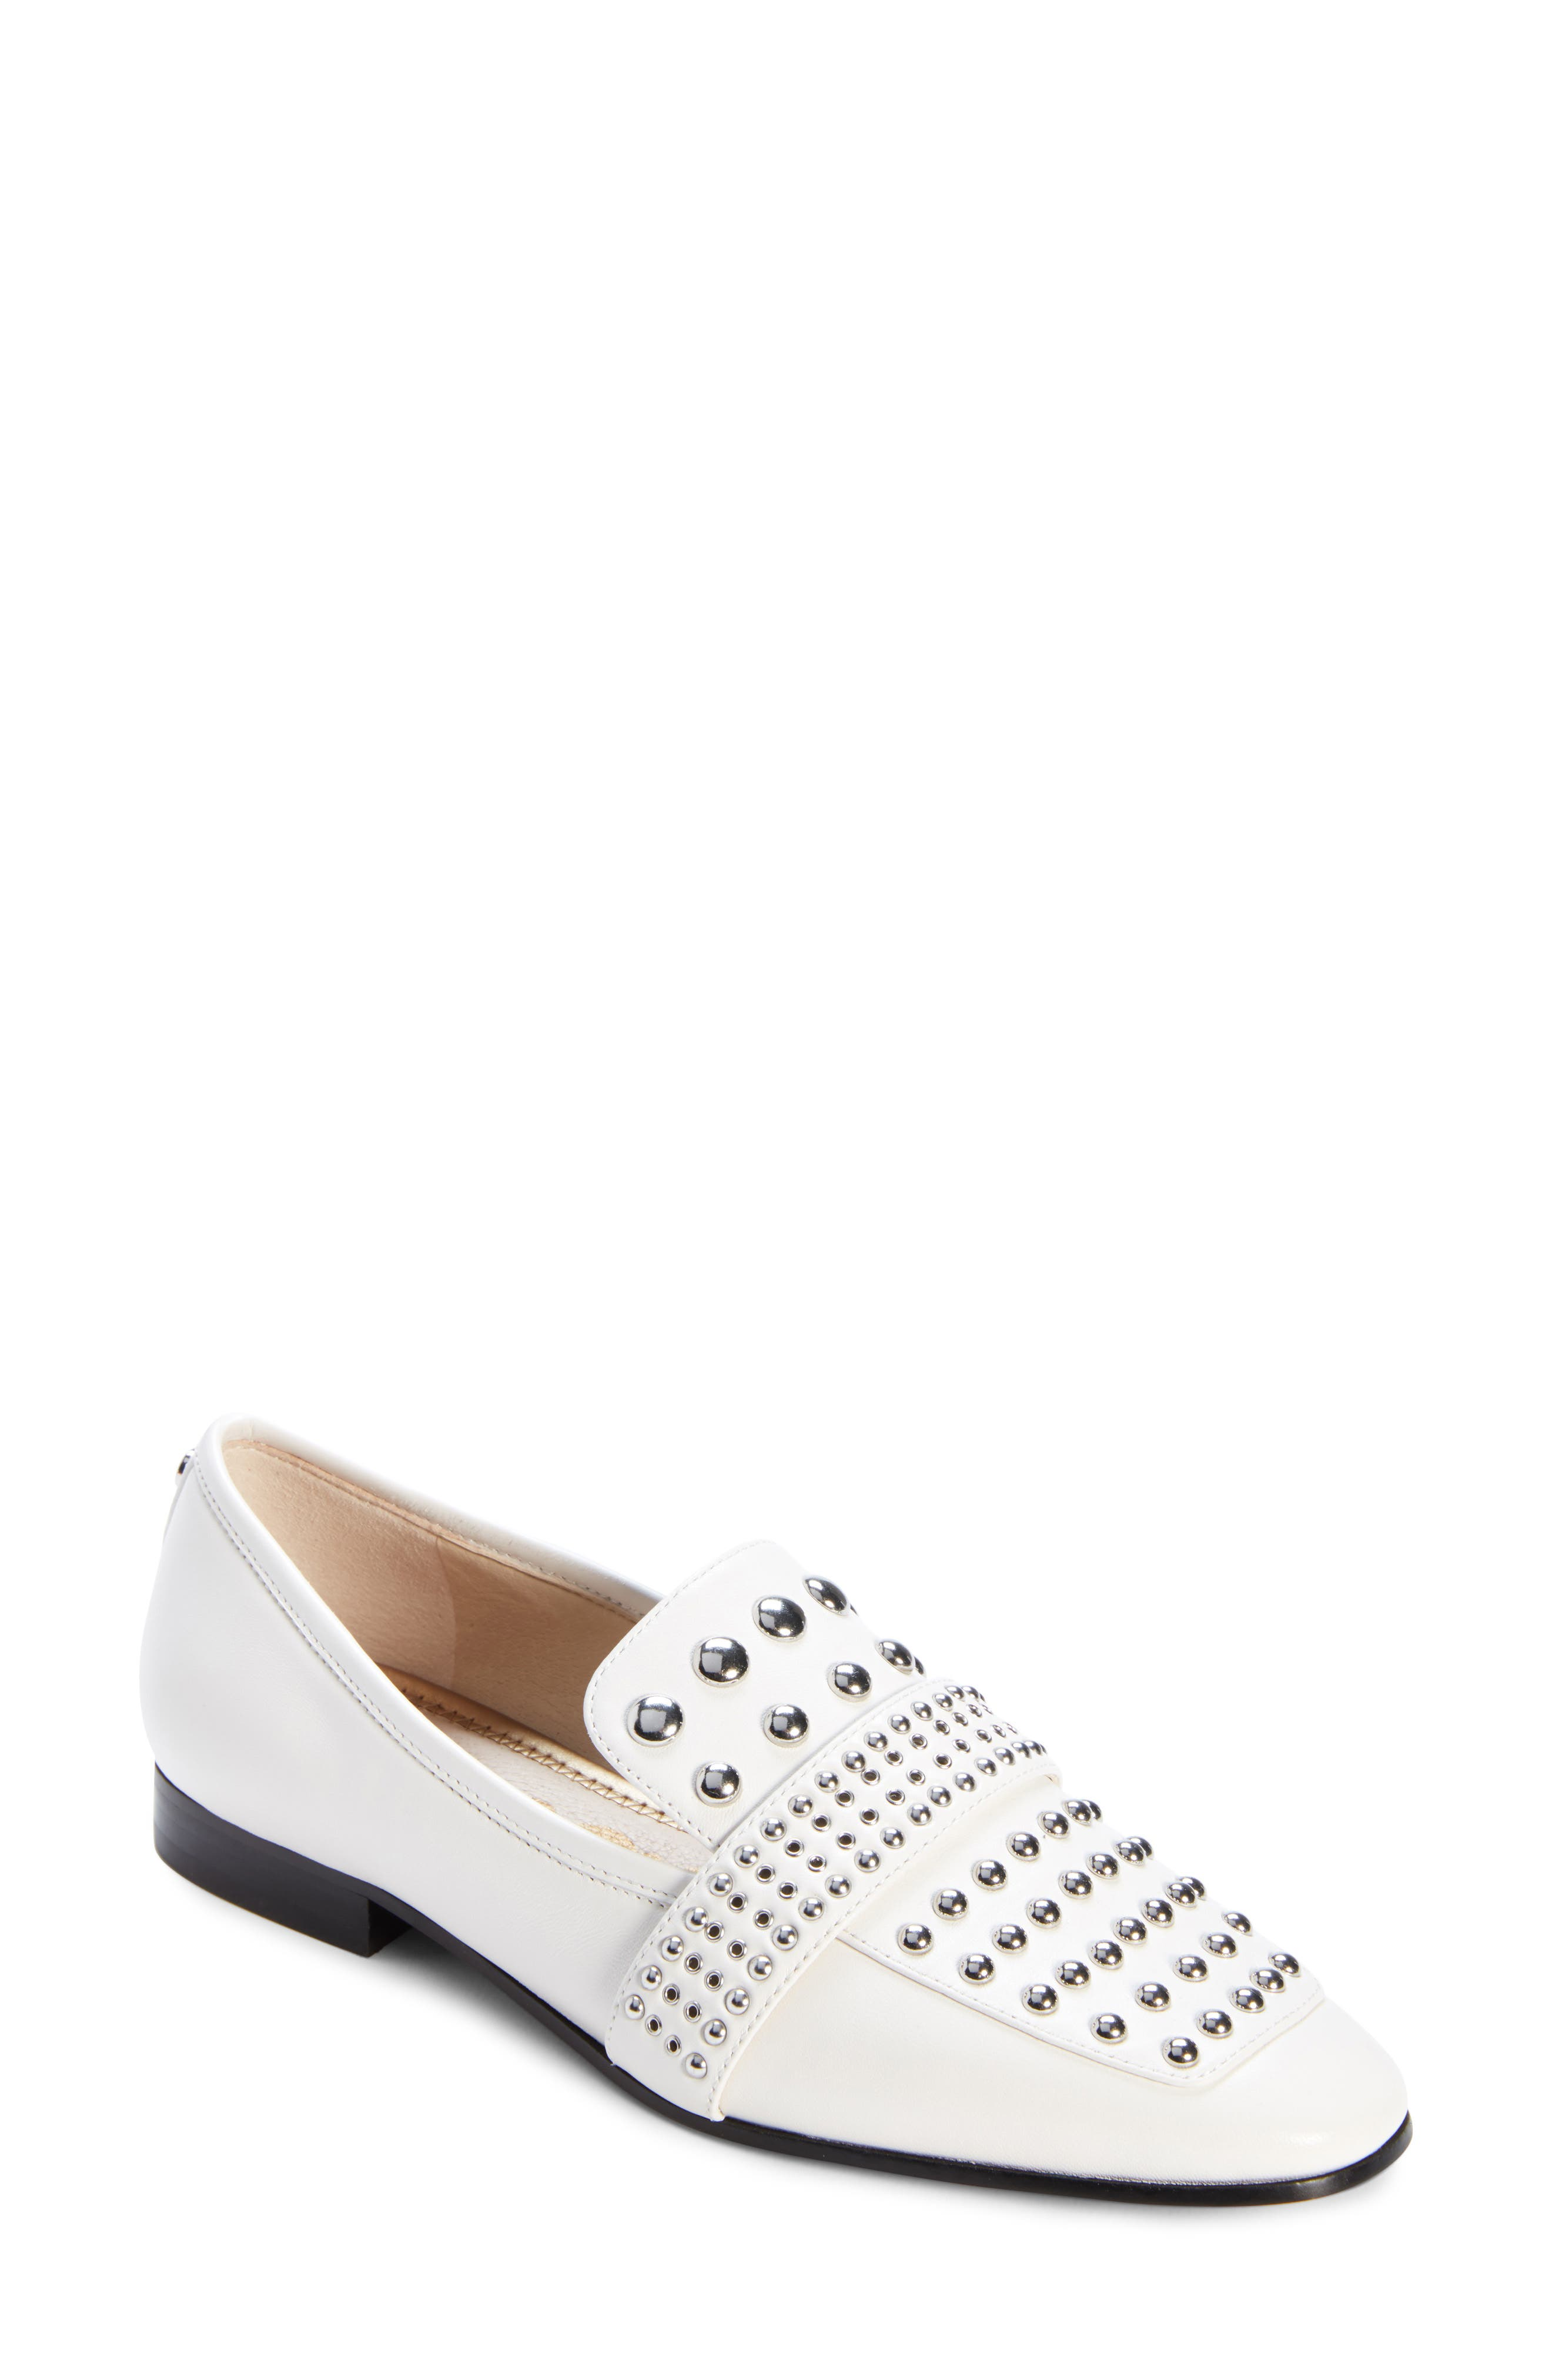 Chesney Loafer,                             Main thumbnail 1, color,                             BRIGHT WHITE LEATHER